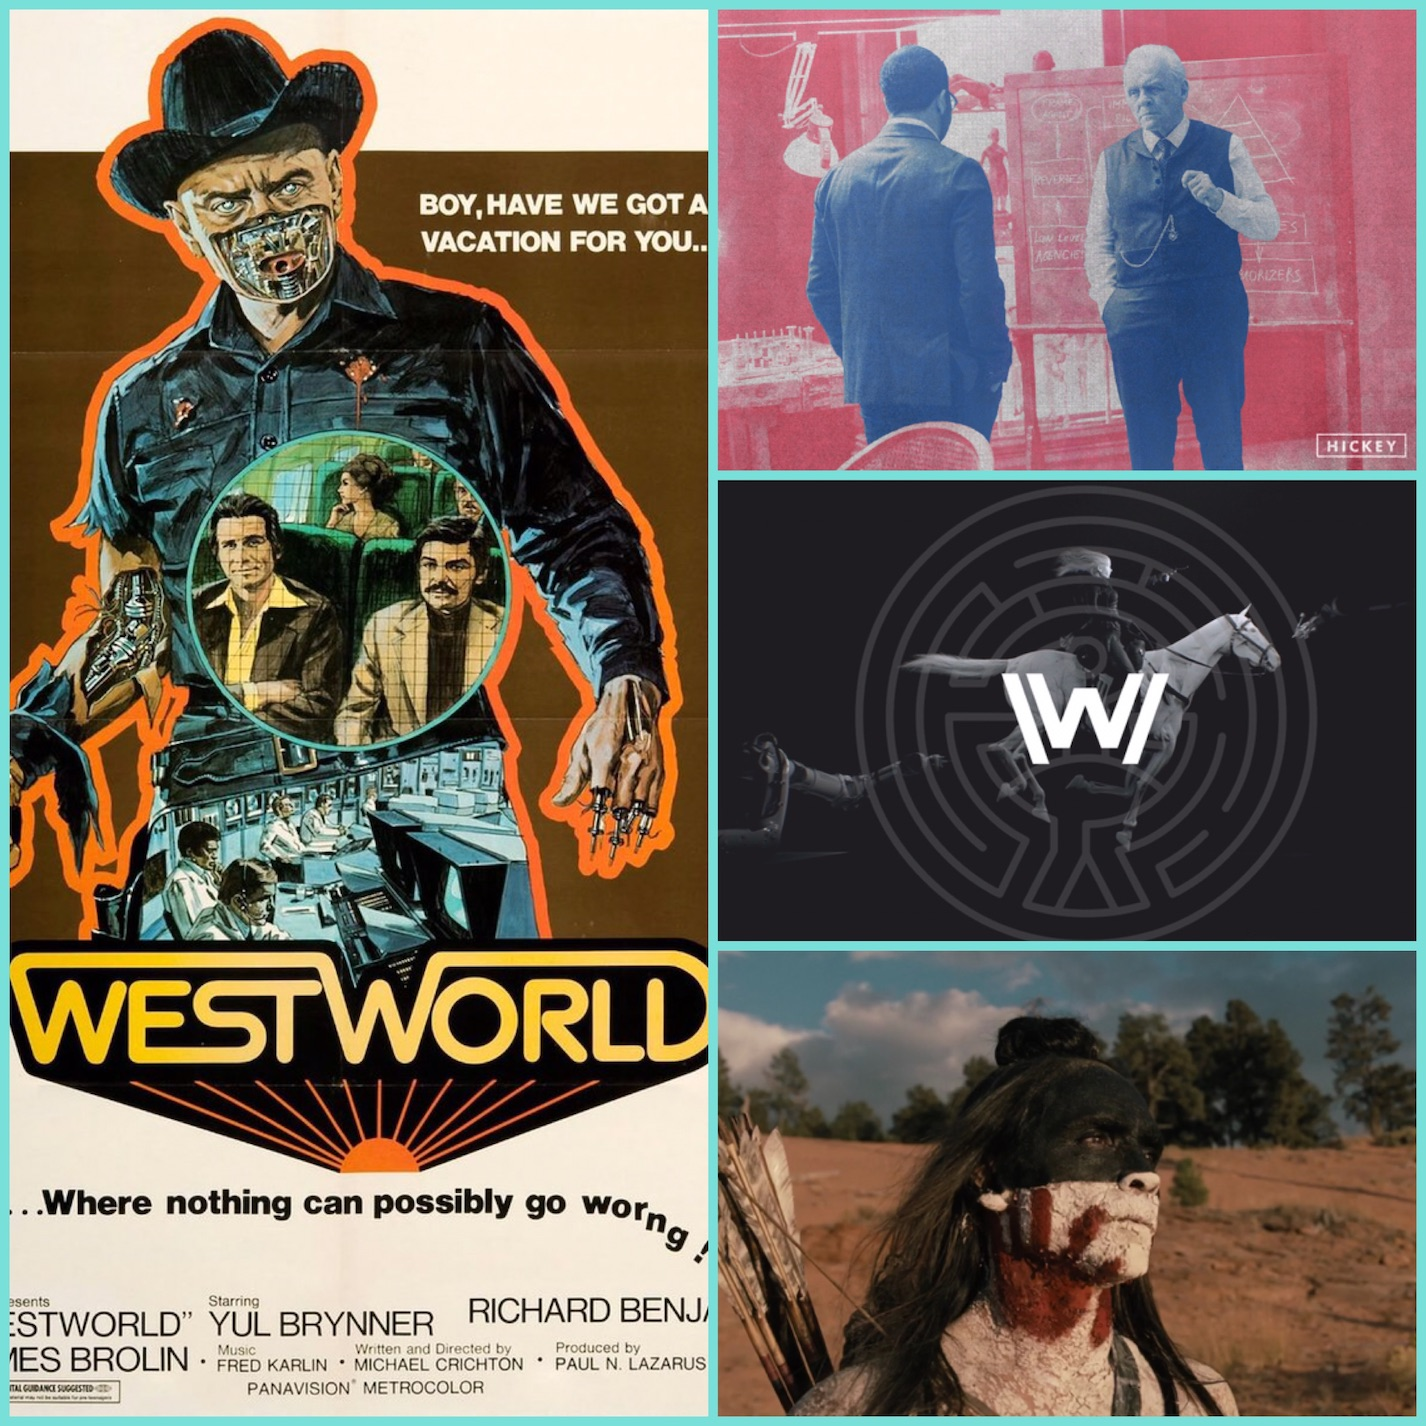 westworld-serie-tv-il-mondo-dei-robot-film-considerazioni-riflessioni-intelligenza-artificiale-ia-ai-insta-thoughts-cinema